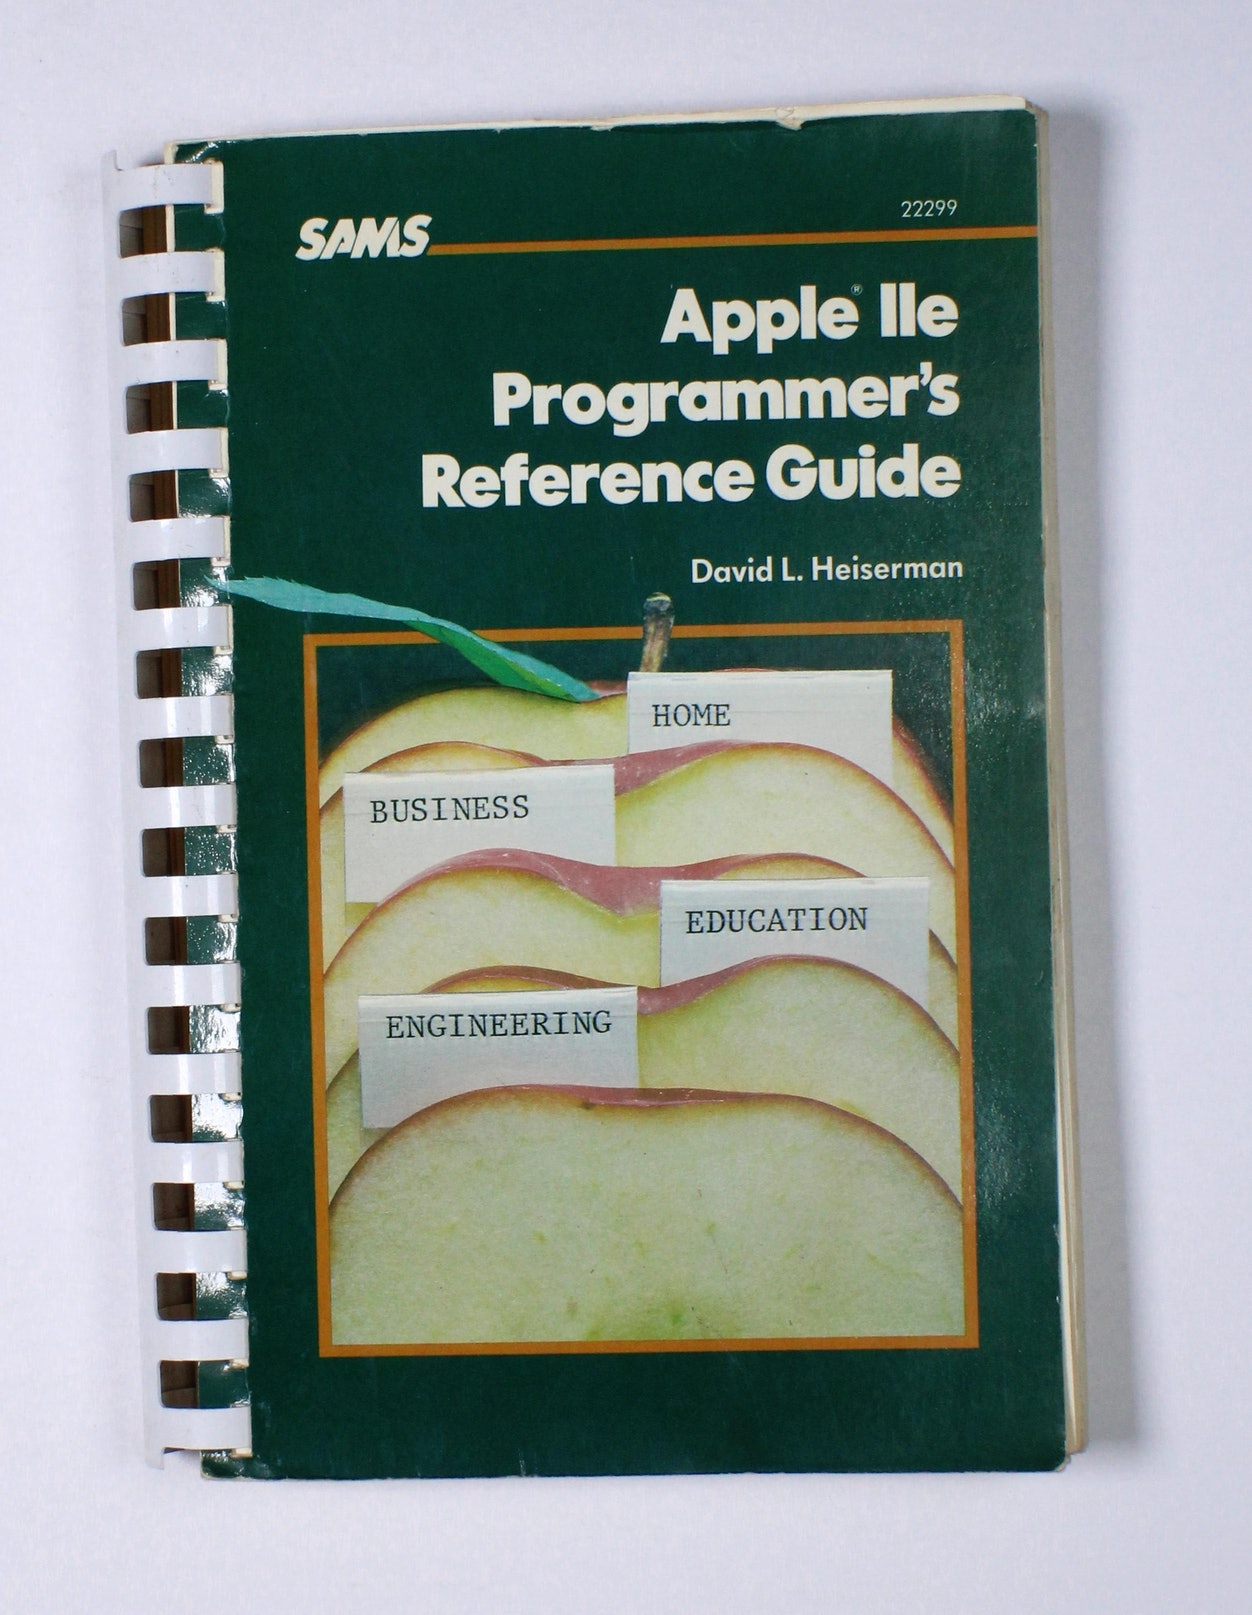 Apple IIe Programmer's Reference Guide